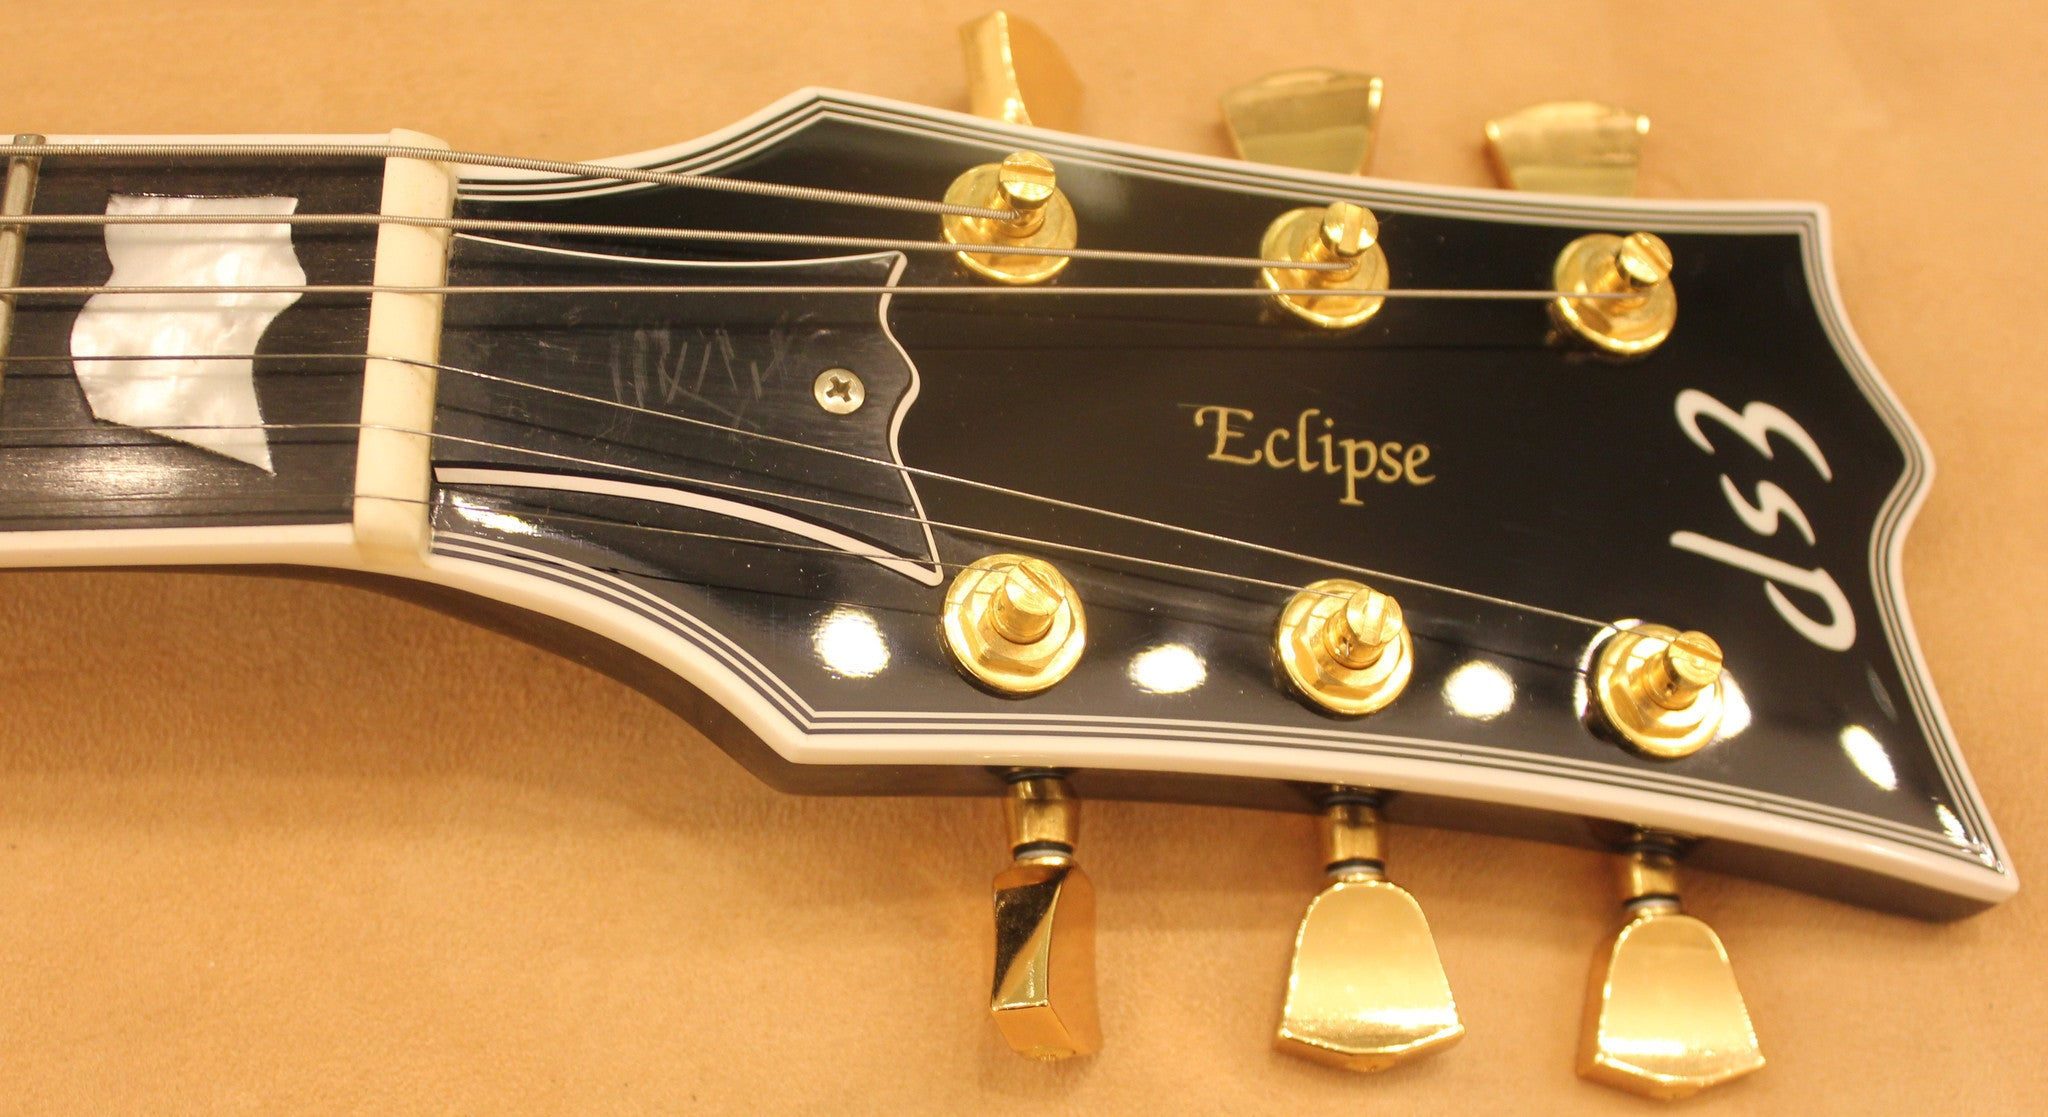 esp-eclipse-ctm-ft-sn-ss1233309 indonesia